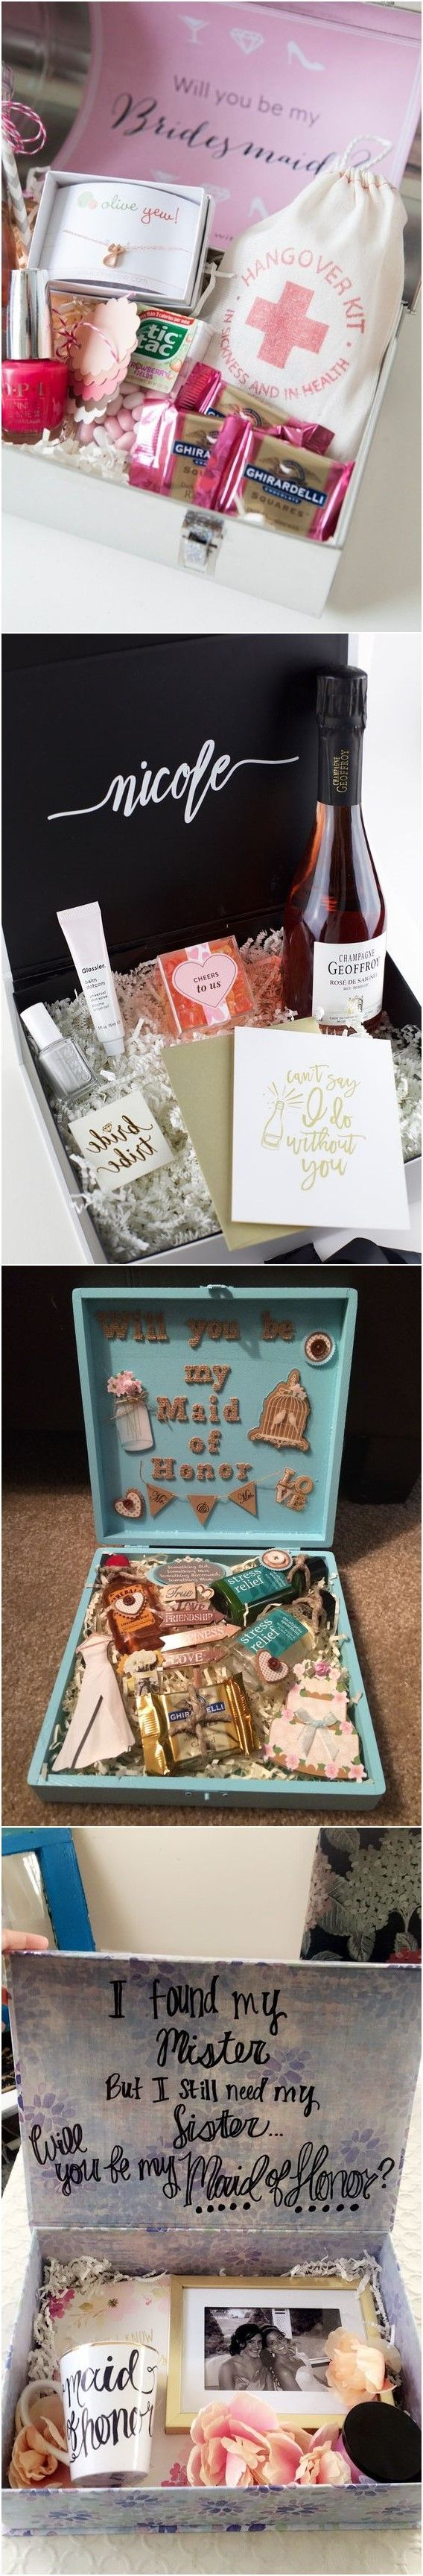 20+ Maid of Honor Proposal Ideas! She loved it and said YES!!!